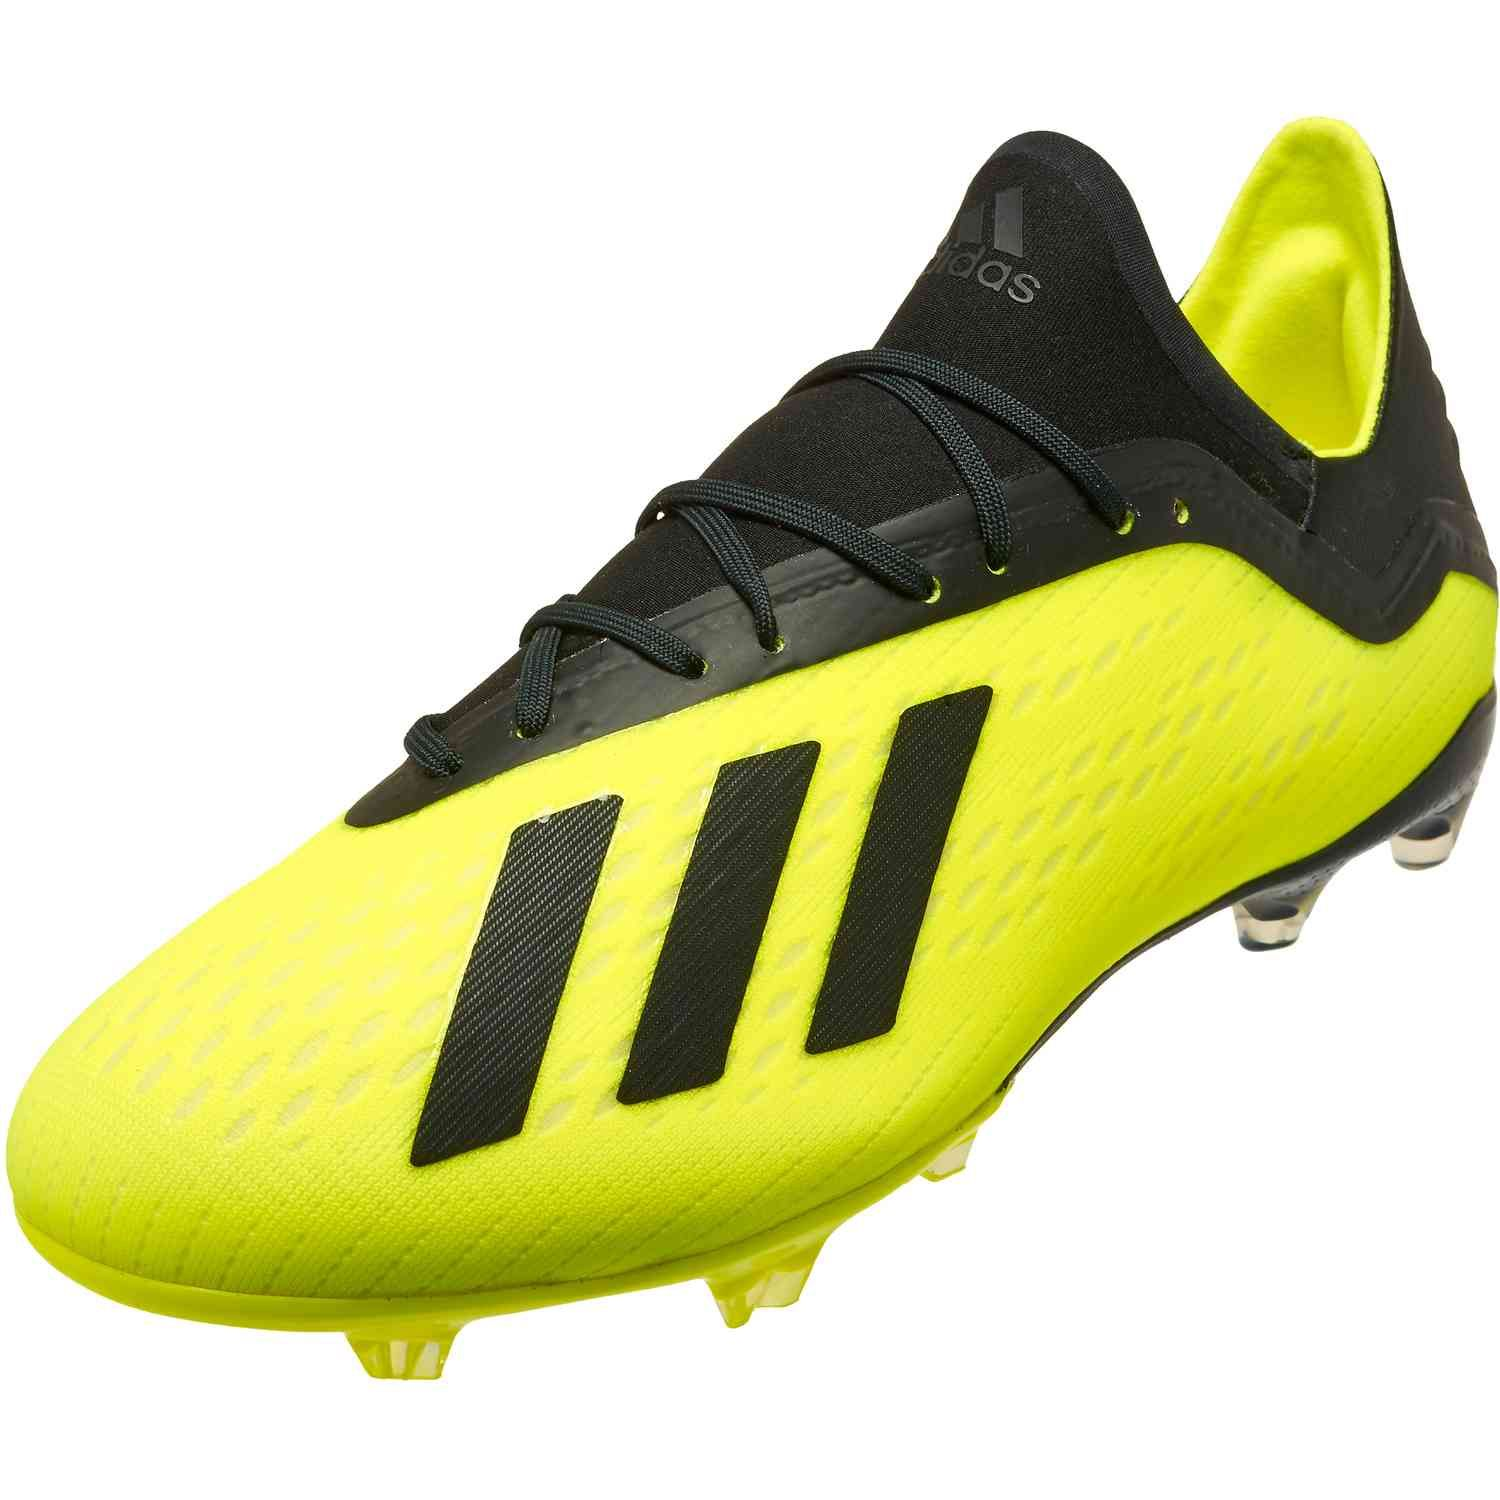 edcfd6992 Team Mode pack adidas X18.2. Buy yours now from SoccerPro.